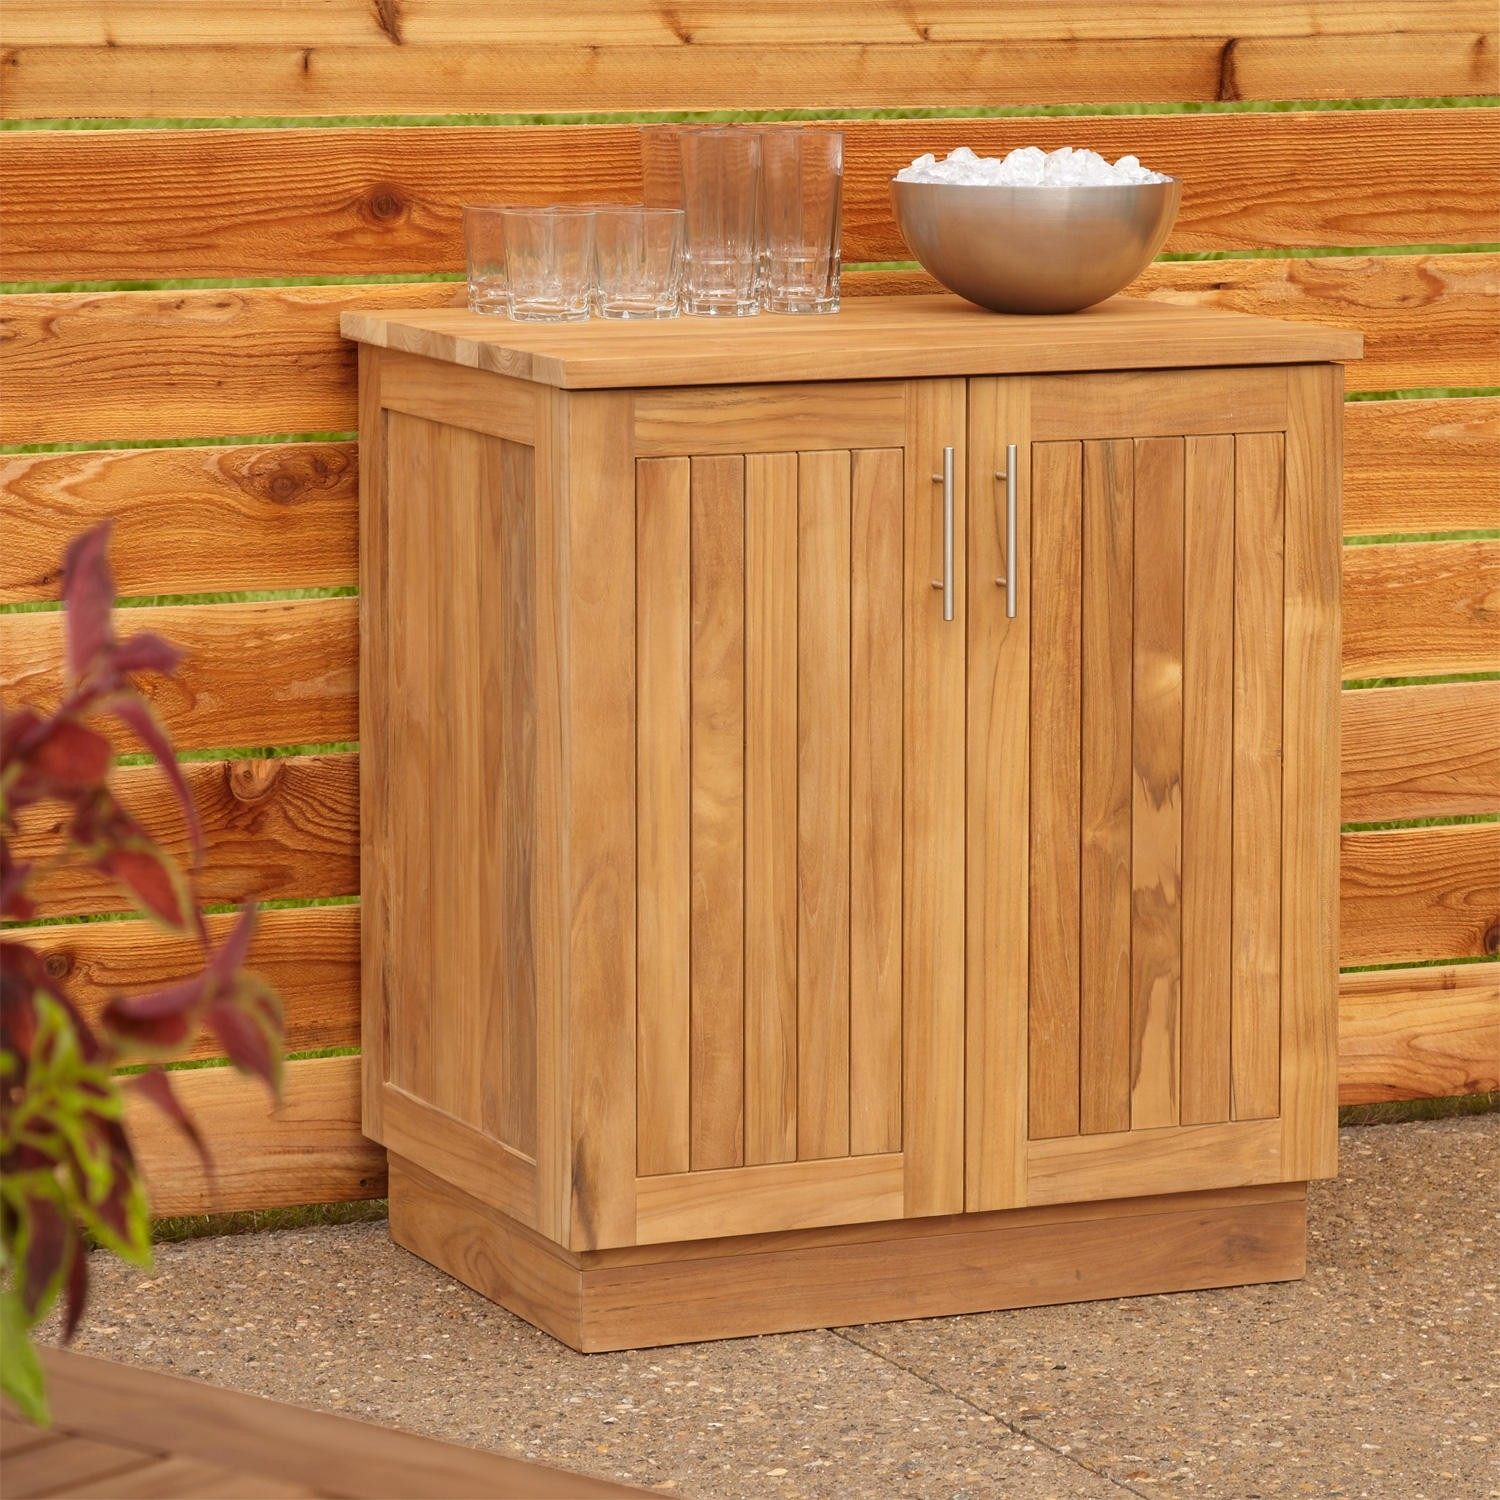 Waterproof Outdoor Storage Cabinet